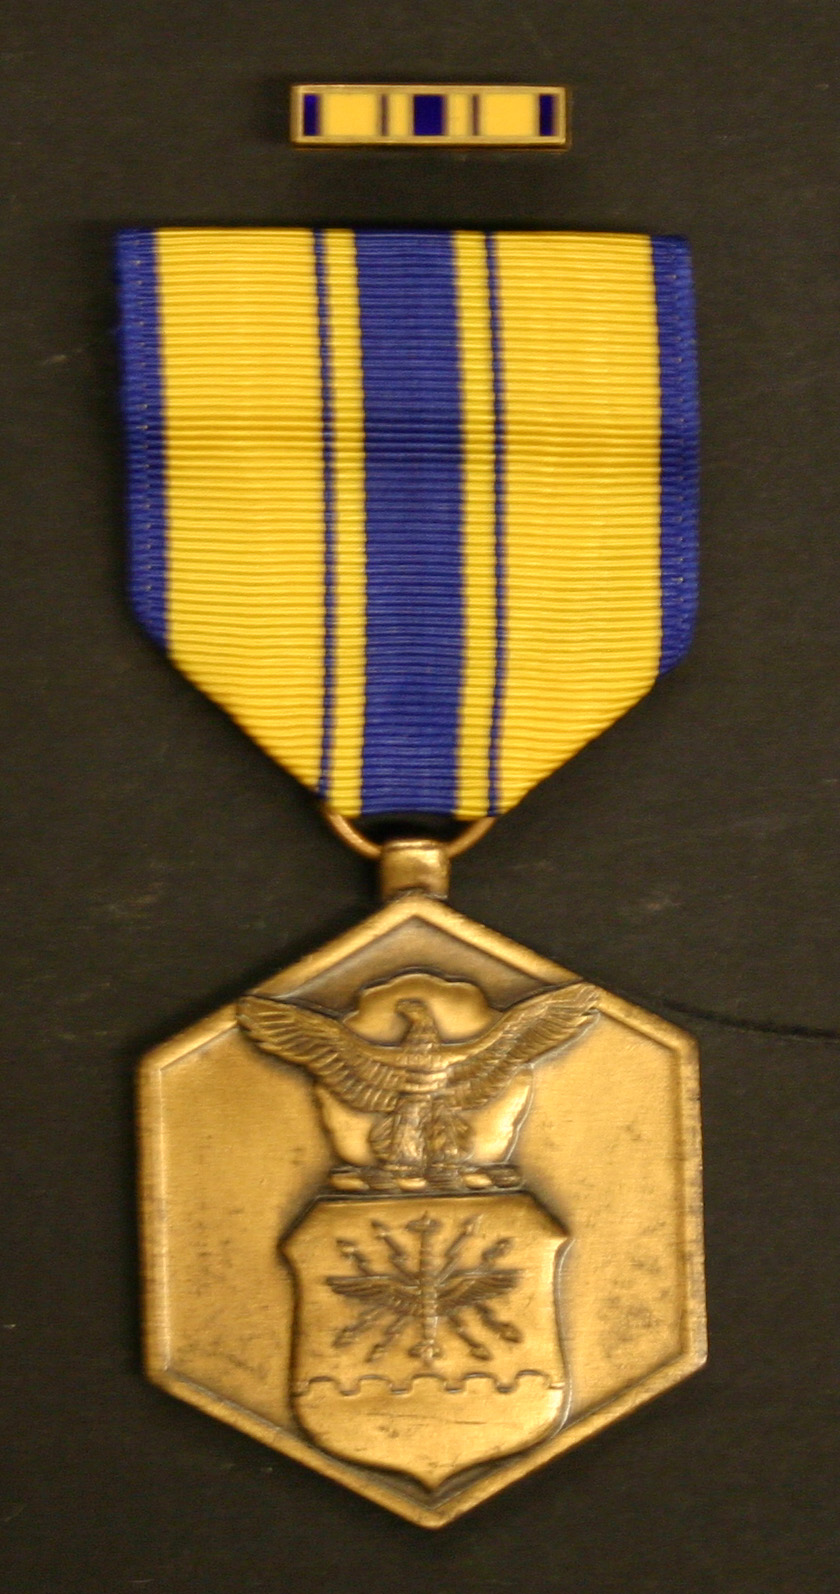 1611museum2205  U. S. Air Force Commendation Medal awarded for participation in the Mayaguez Mission  Robert A. Goode Collection (Thailand, Laos, Cambodia Brotherhood)